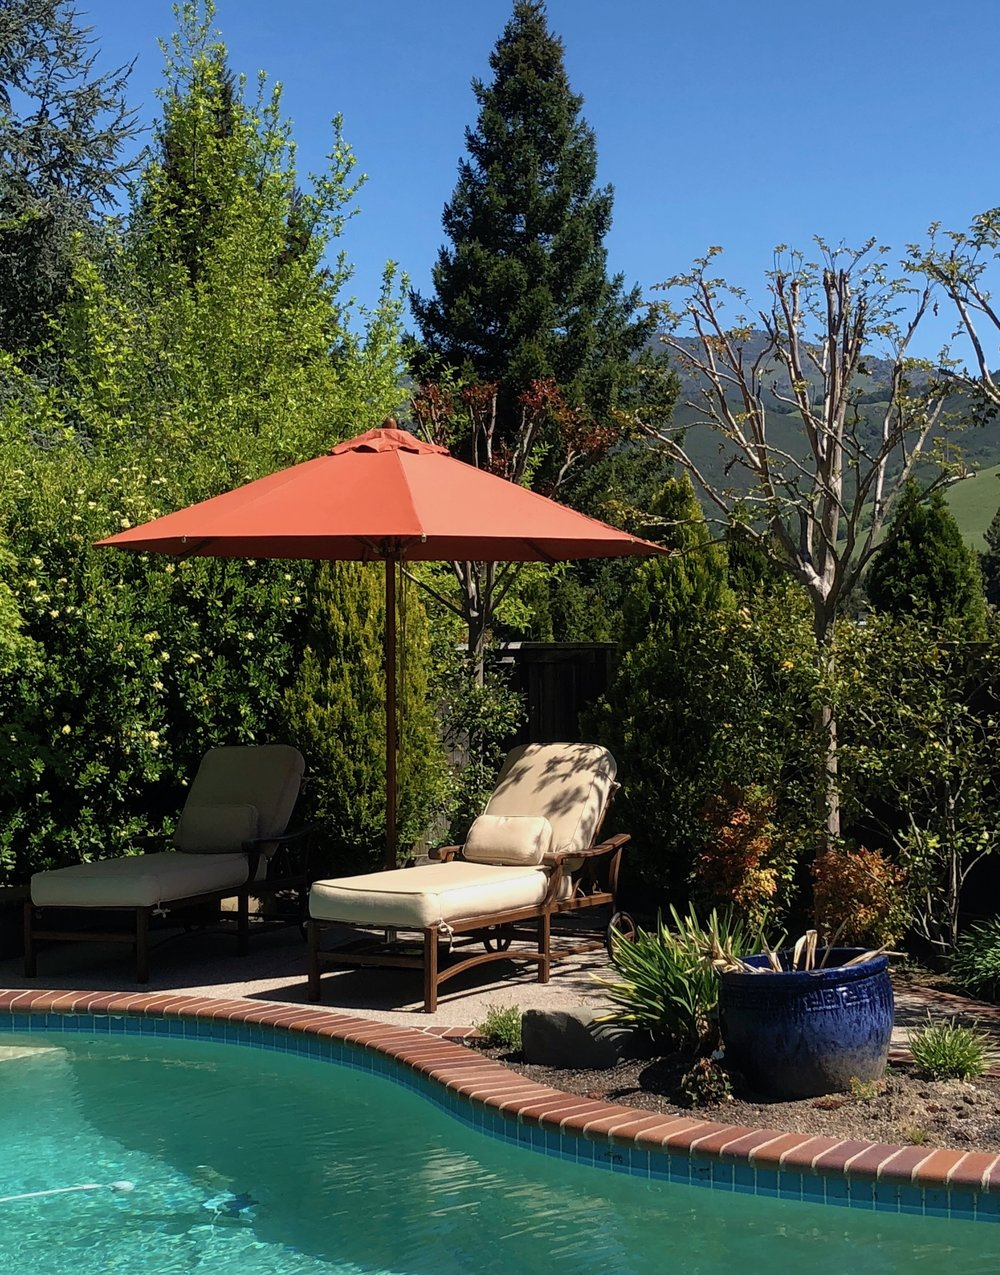 The 11' Round Levante Center Pole Bamboo Market Umbrella provides shade for chaise lounges by the pool.